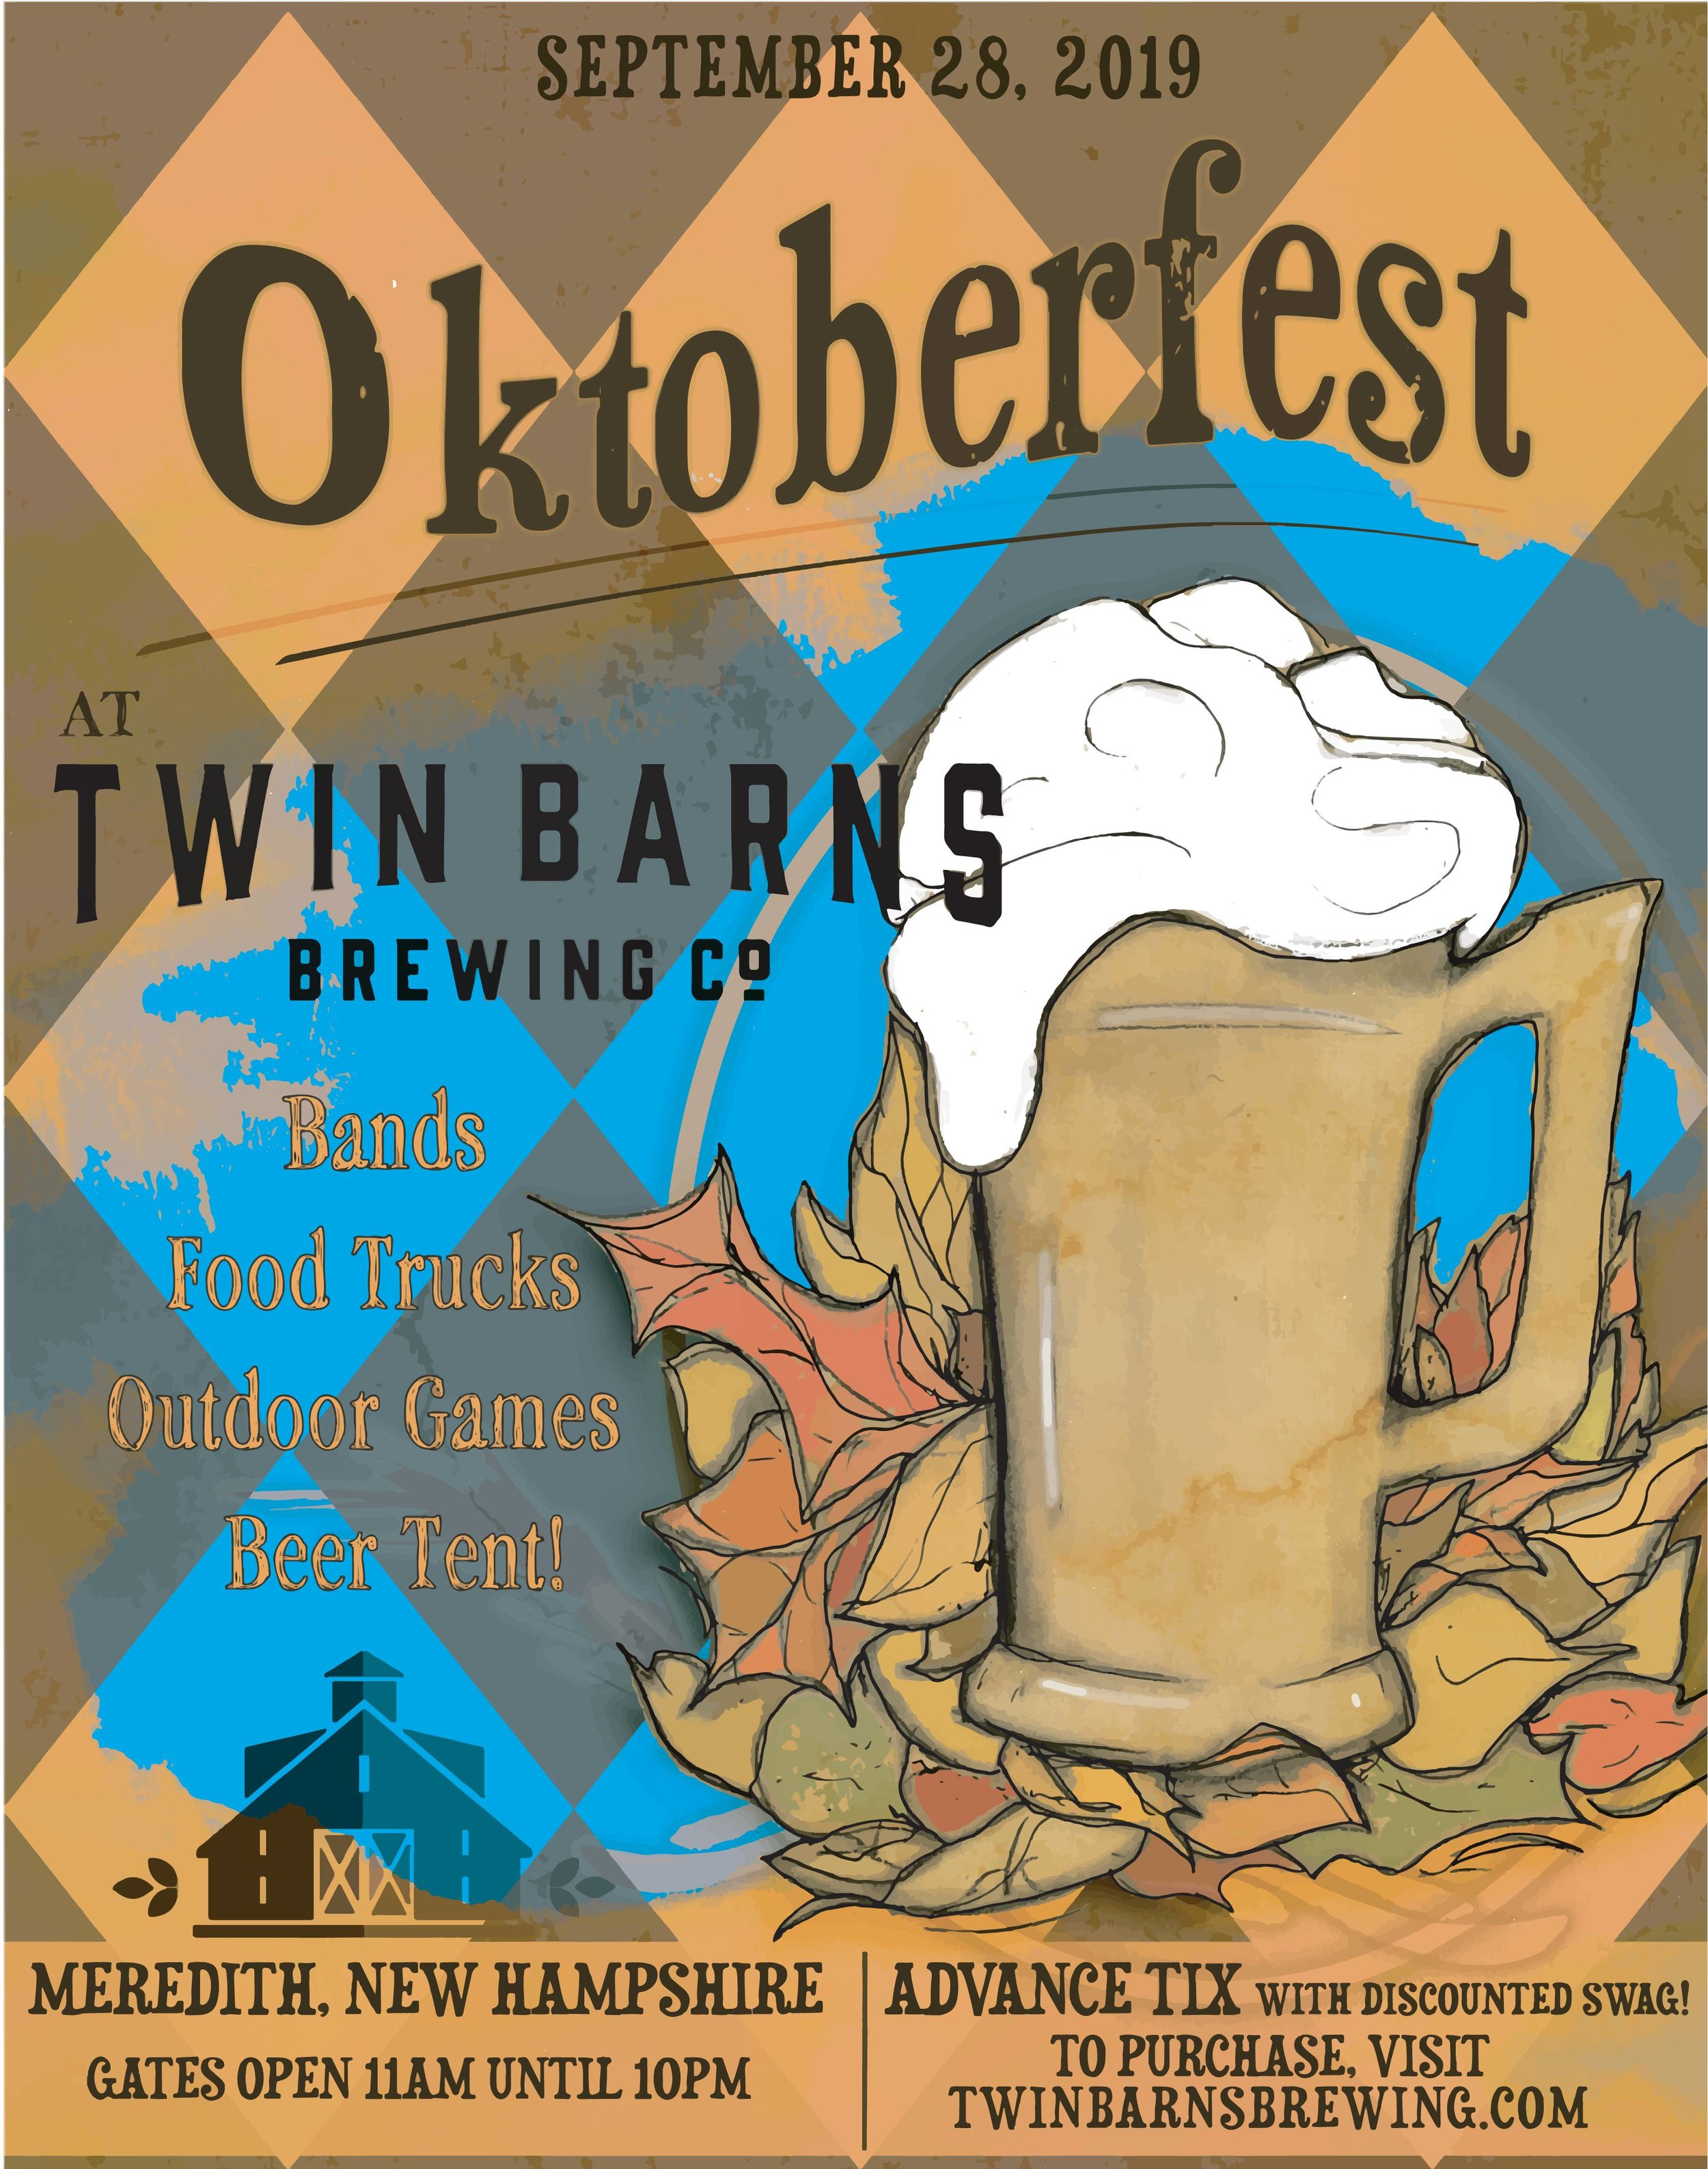 Join us on September 28th from 11am to 10pm for our first annual Oktoberfest! - We will have live music, food trucks, outdoor games, and more fun for the whole family!Offered beers include our staple on-tap brews and two special German style featured beers:Helles - a full-bodied, mildly sweet, and light-colored beer with low bitternessDoppelbock - a very rich and malty beer, with toasty notes with a little hop finishPre-purchased tickets are $20 and include a TBBC Oktoberfest t-shirt, mug, and your first beer! Tickets at the door will be sold for $25*. Come wearing traditional dirndl or lederhosen and receive free admission! This is not an event to be missed!*Those not drinking or not-of-age will be admitted for free